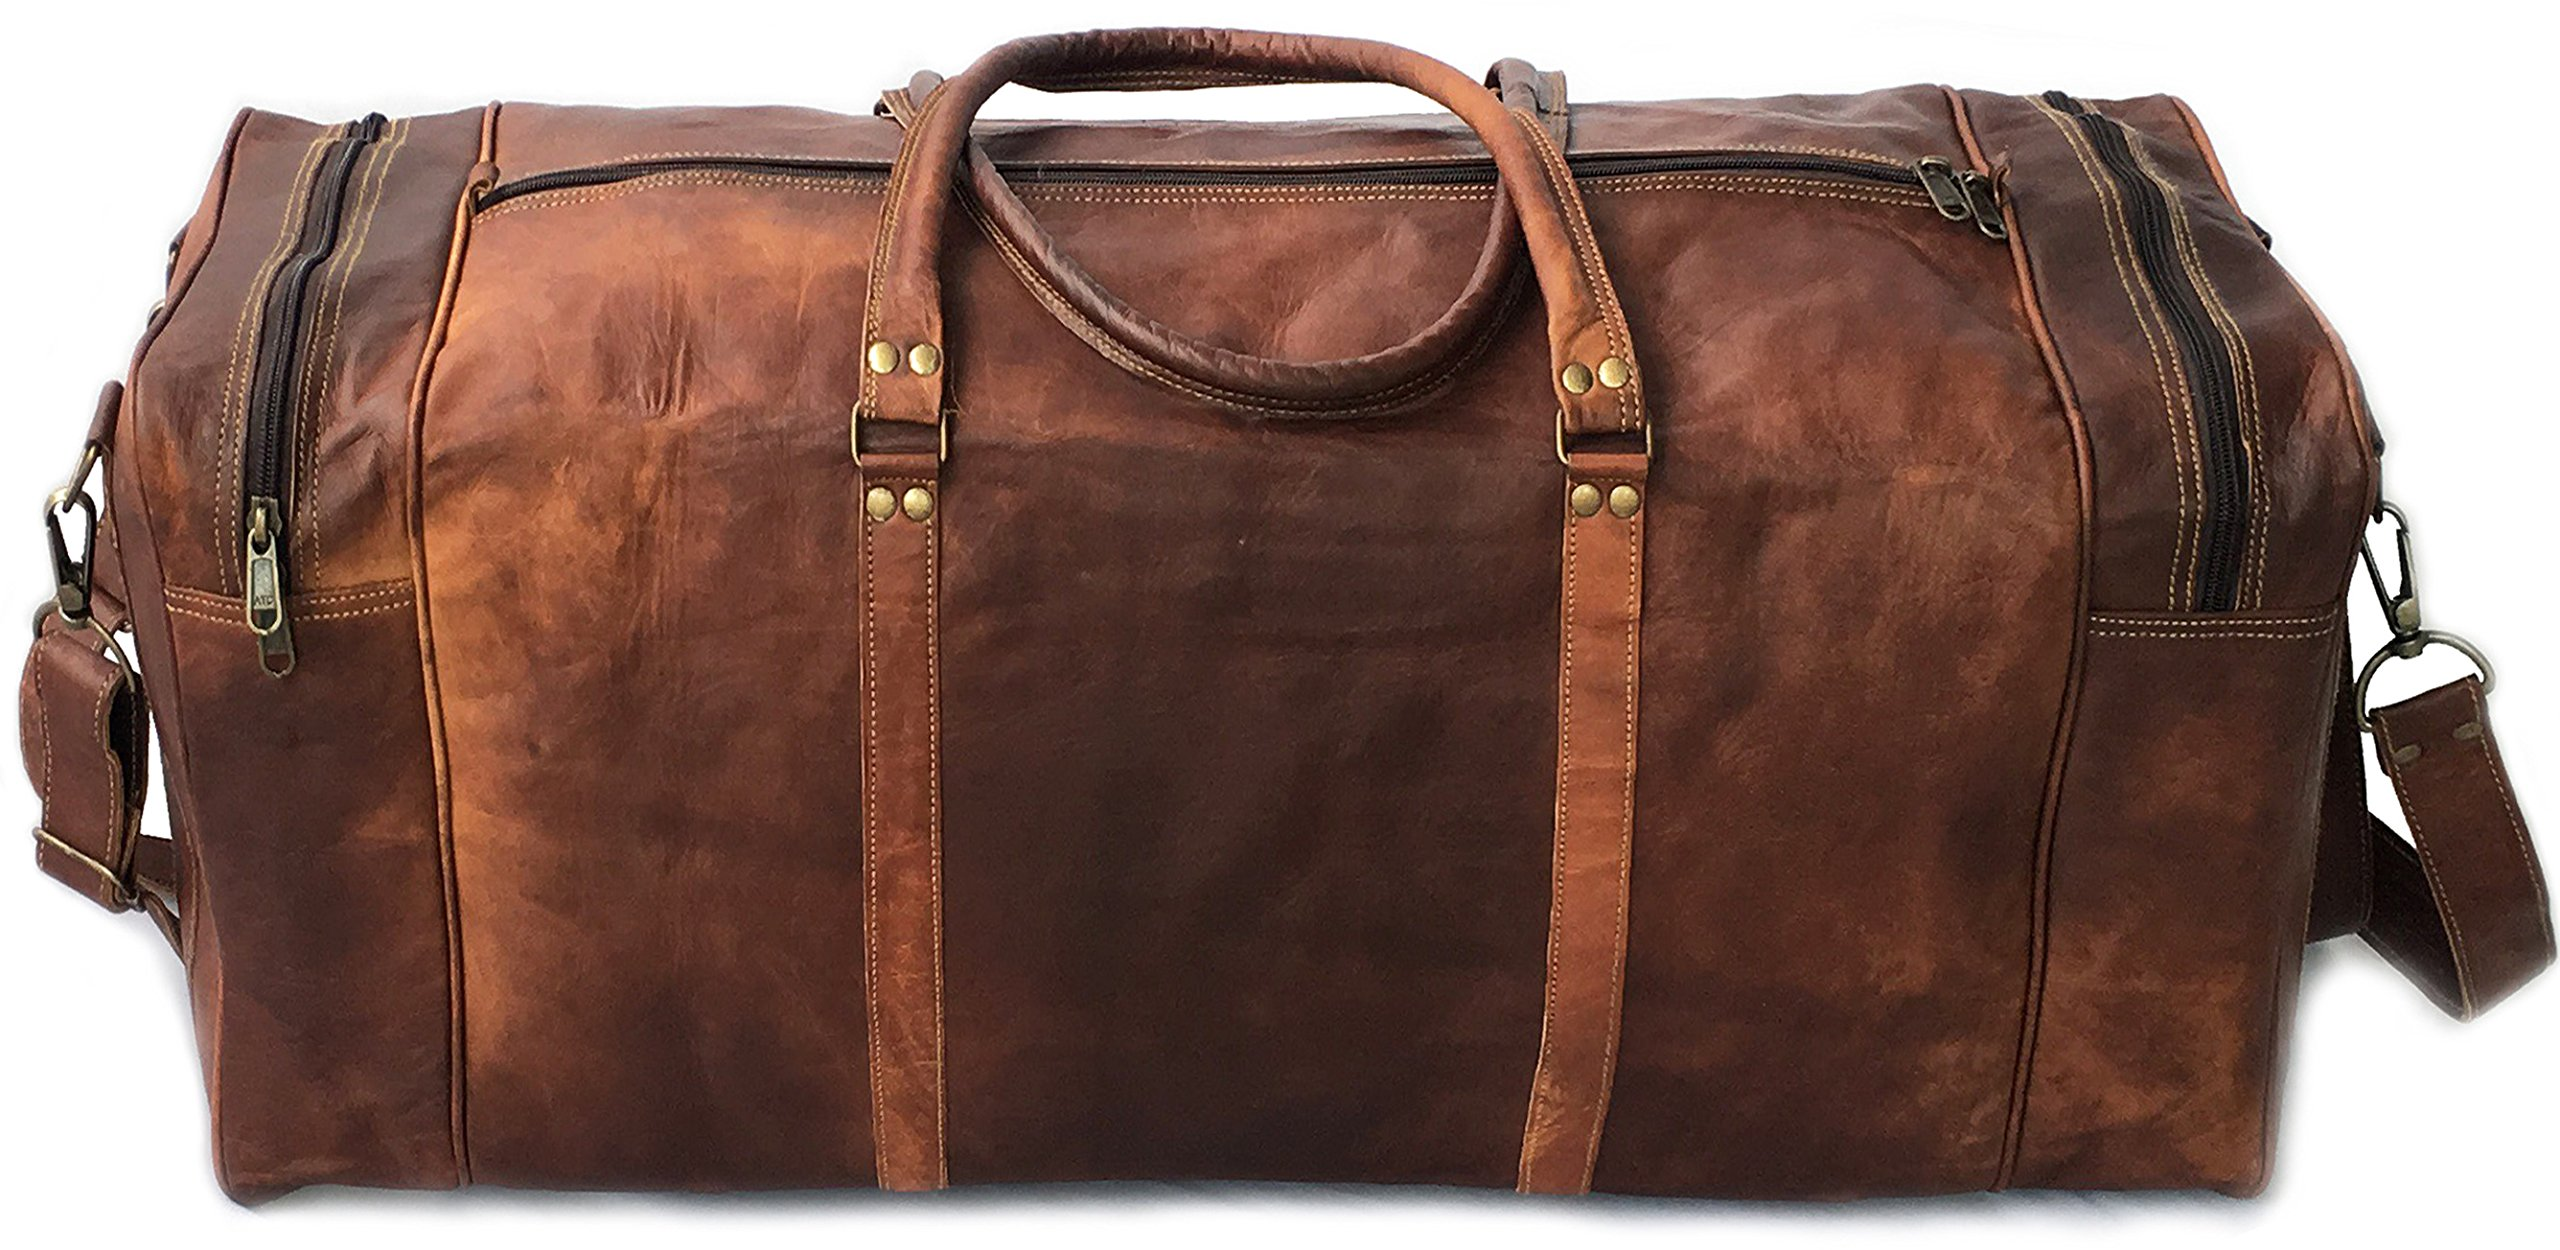 28'' Inch Real Goat Vintage Leather Large Handmade Travel Luggage Bags in Square Big Large Brown bag Carry On By KK's leather by cuero (Image #4)